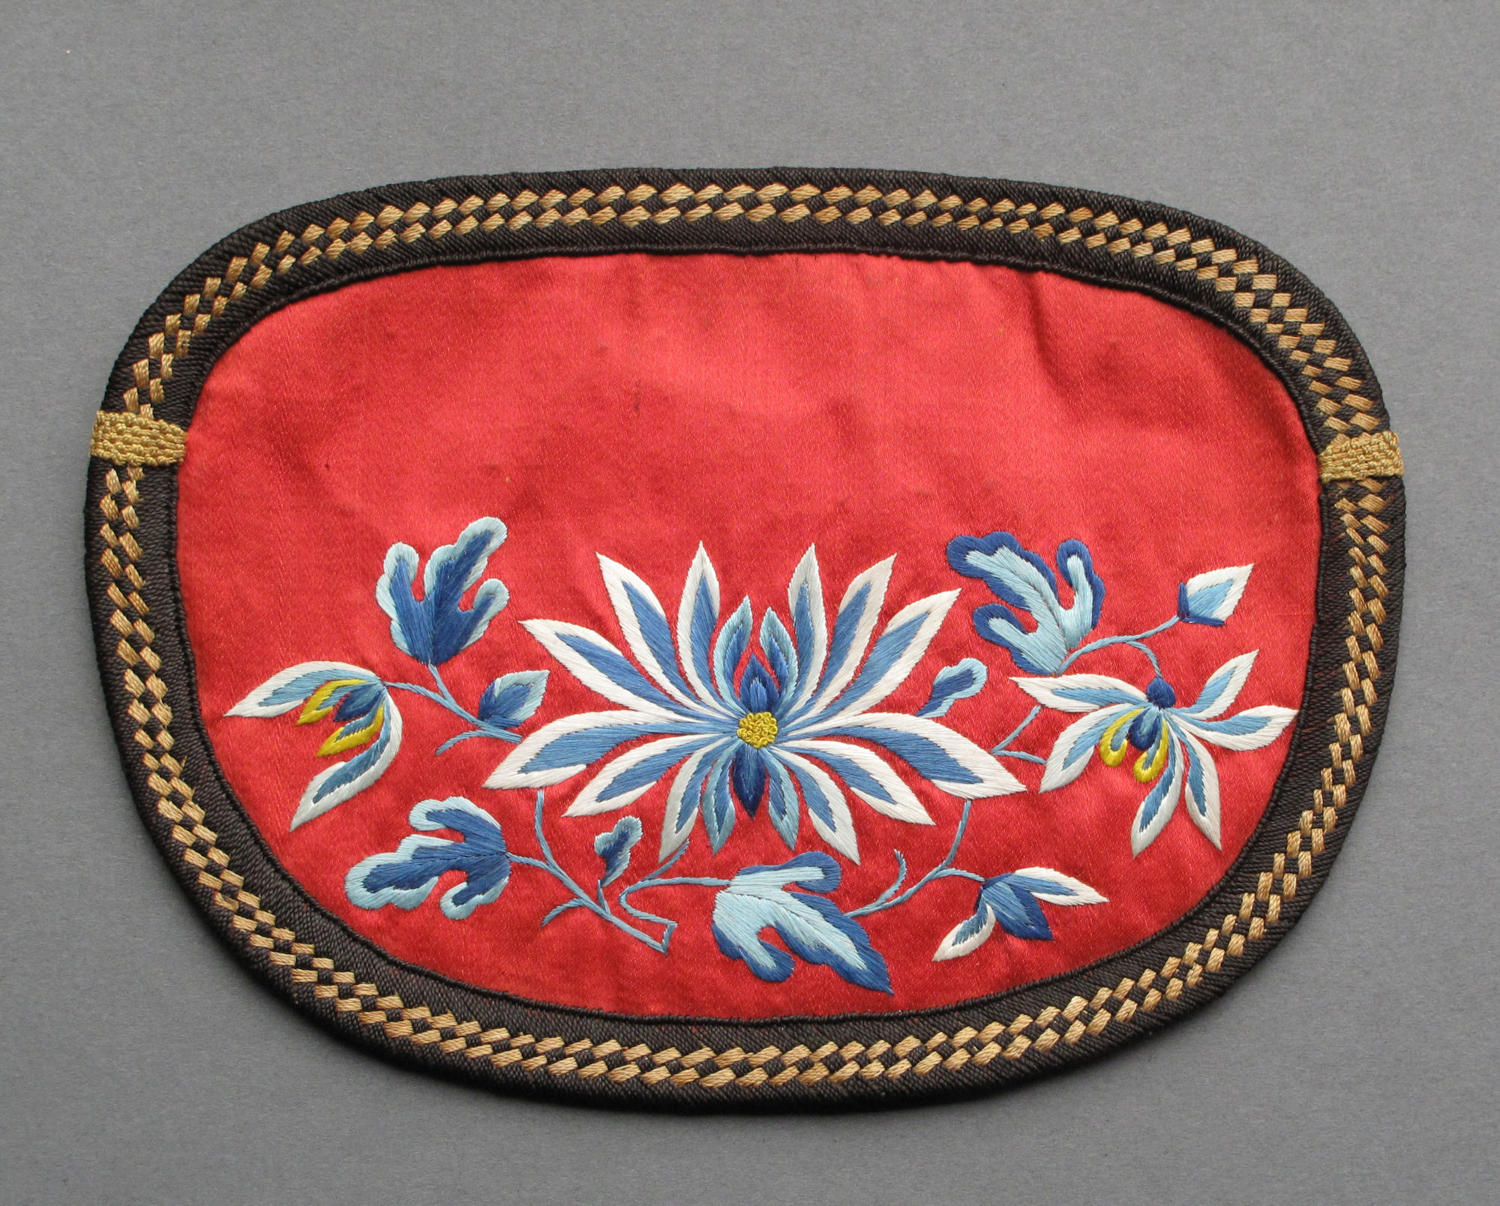 A late C19th red Chinese silk purse with blue flower decorations